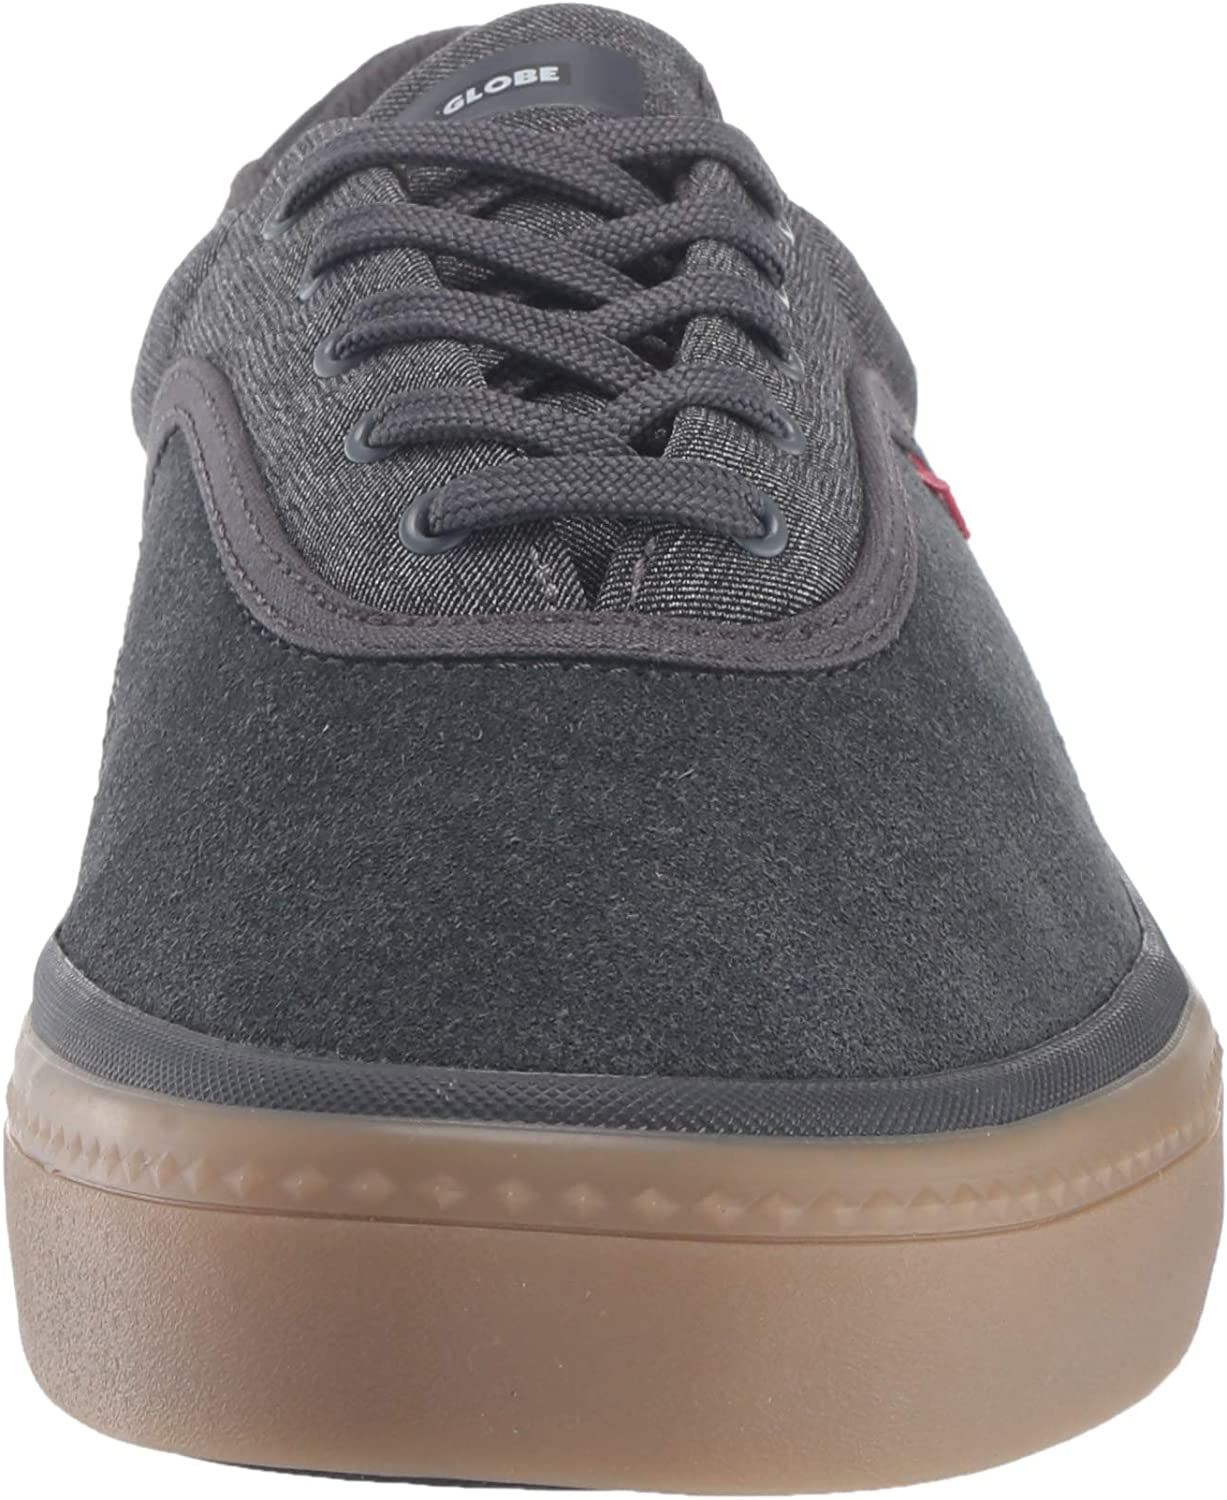 Globe Men's Sprout Skate Shoe Charcoal/Chambray/Gum